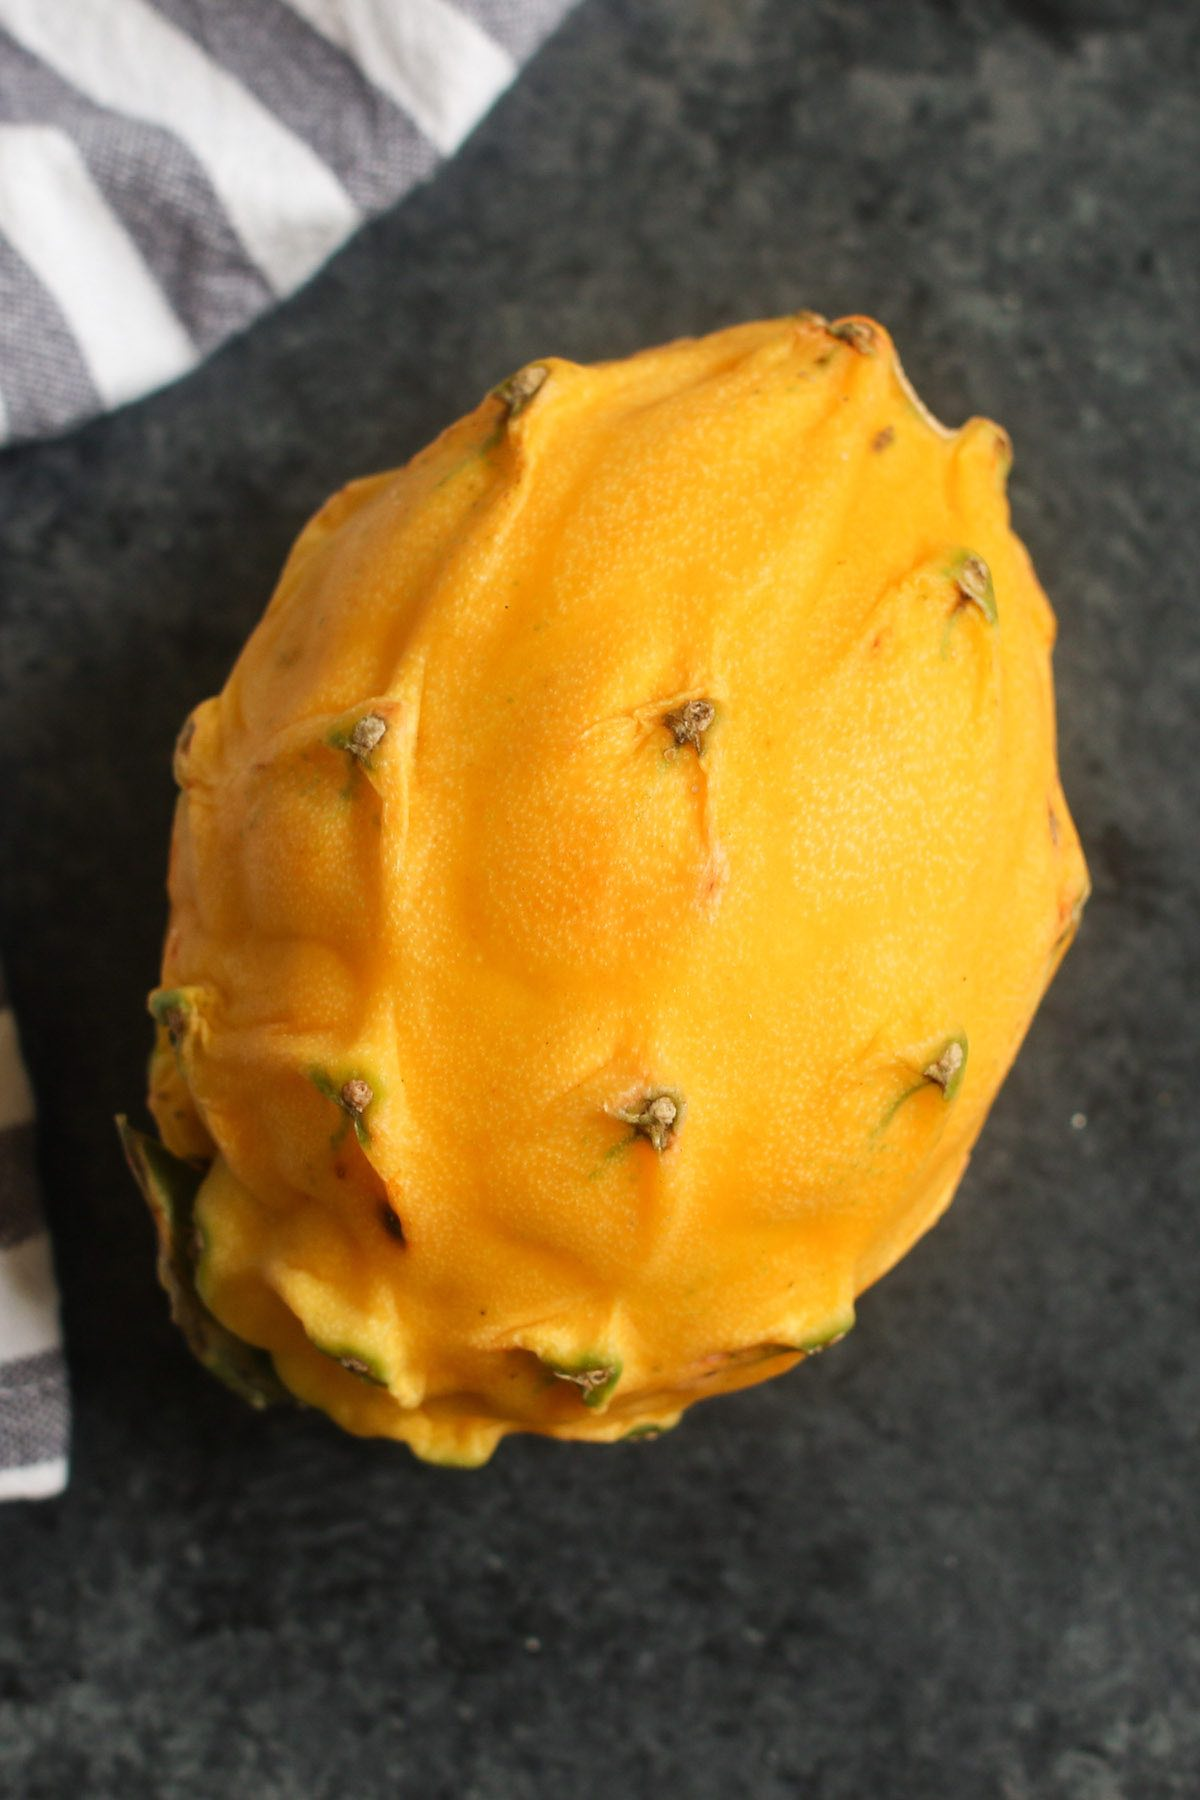 A whole yellow pitaya with its bright yellow color, oblong shape and knobby skin